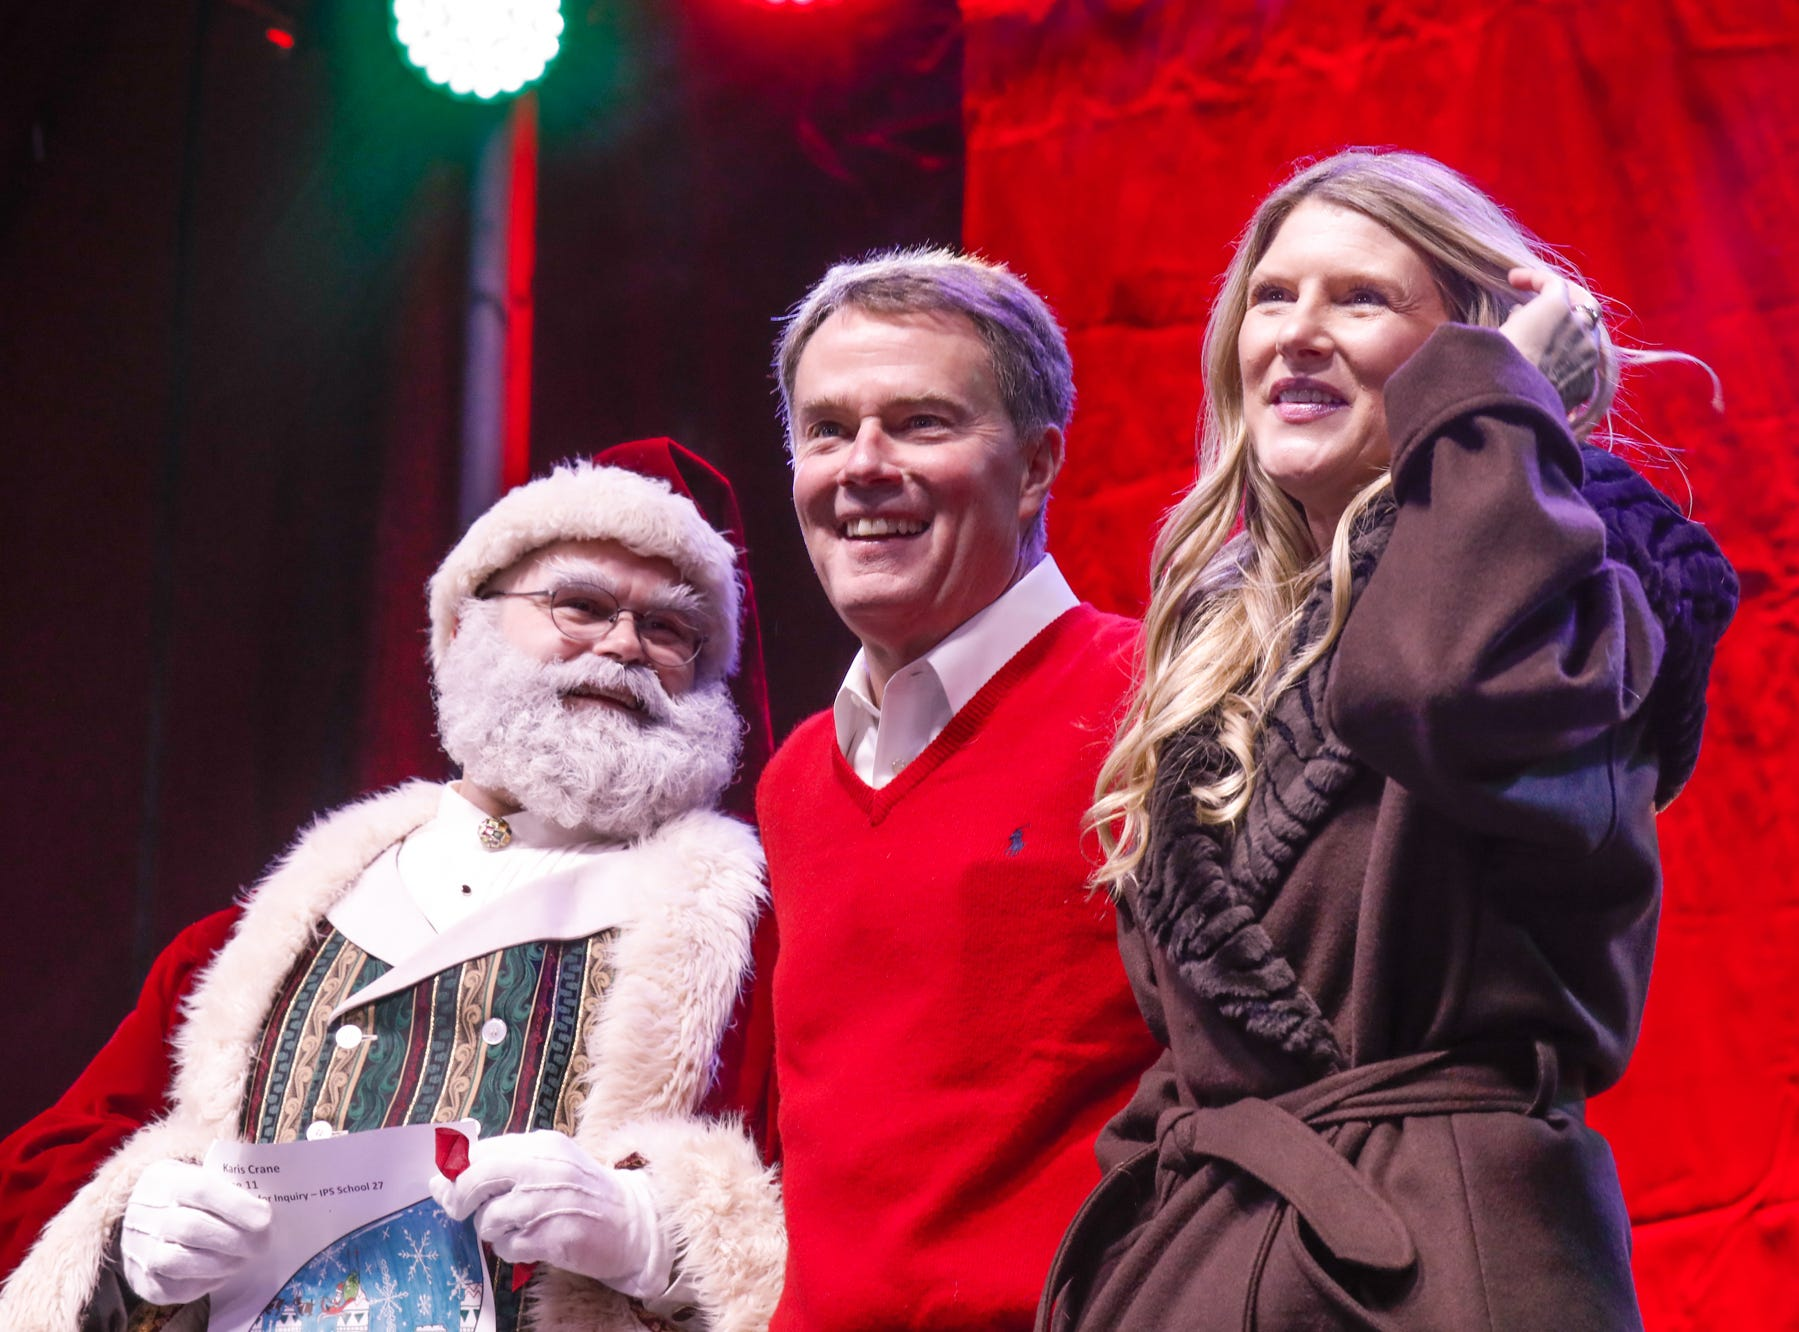 Indianapolis Mayor Joe Hogsett and his wife Stephanie are greeted on stage by Santa during the 2018 2018 Downtown Indy Circle of Lights ceremony,, held on Monument Circle in Indianapolis on Friday, Nov. 23, 2018.